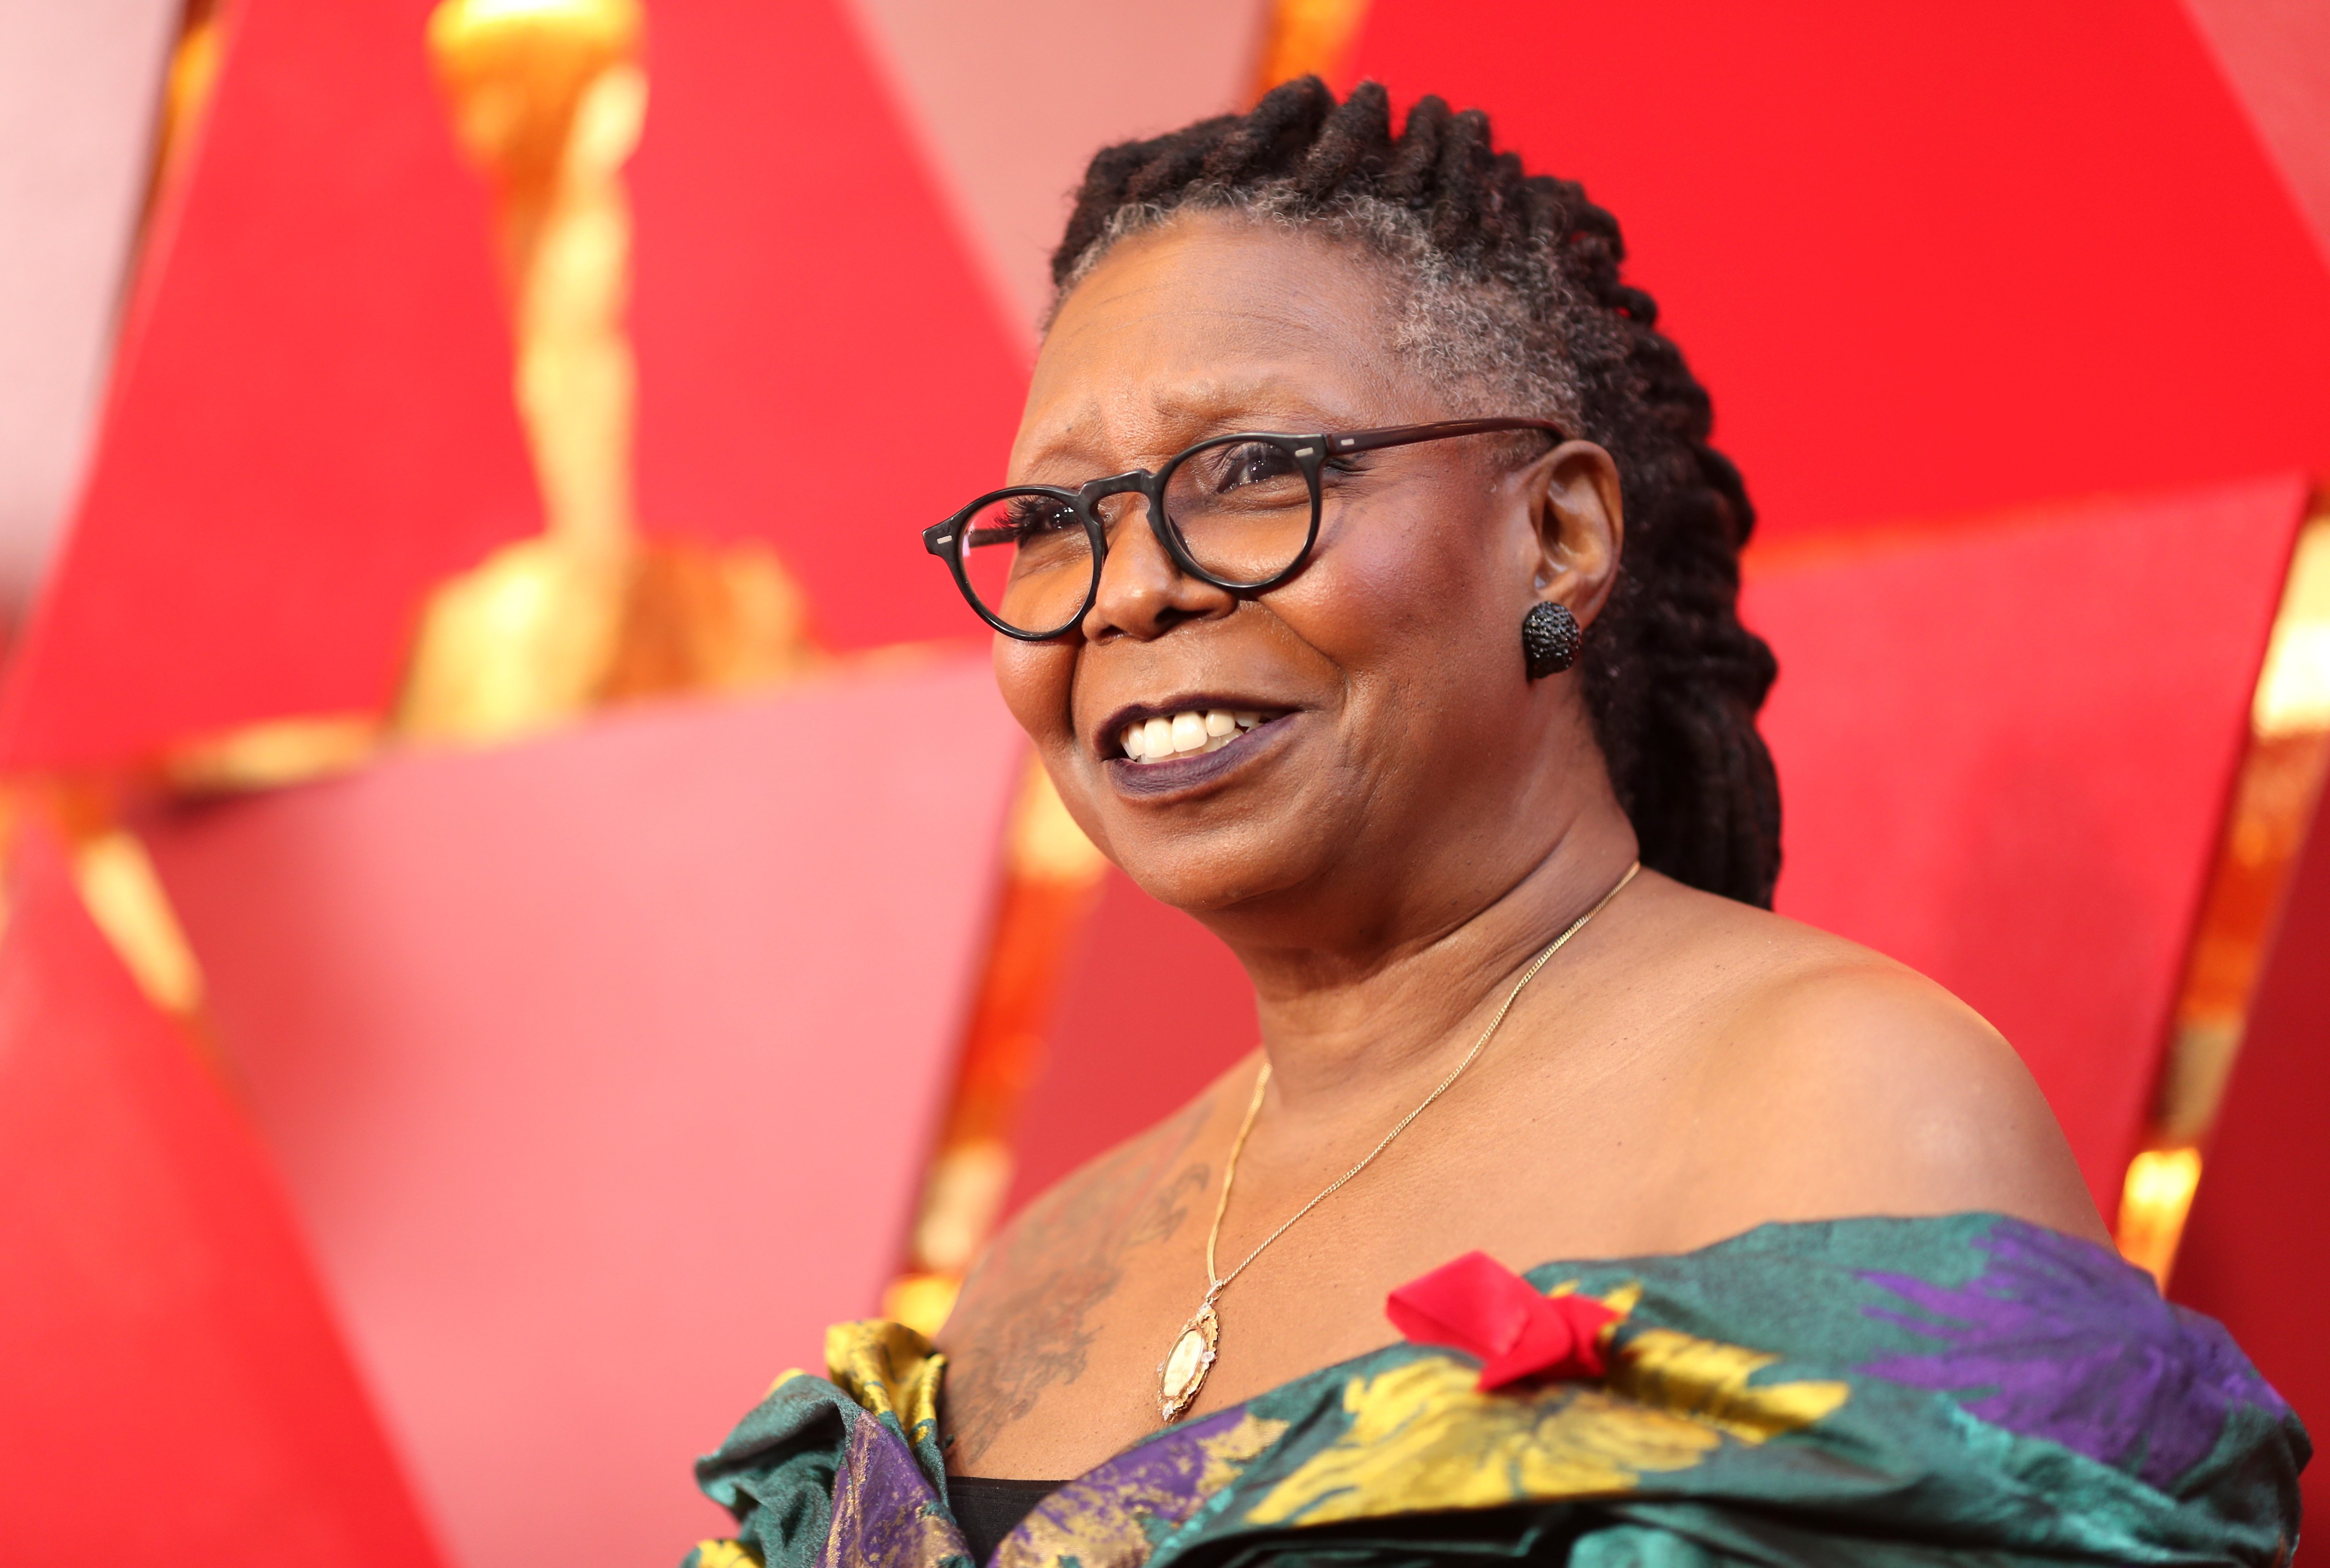 Whoopi Goldberg at the 90th Annual Academy Awards in March 2018. | Photo: Getty Images